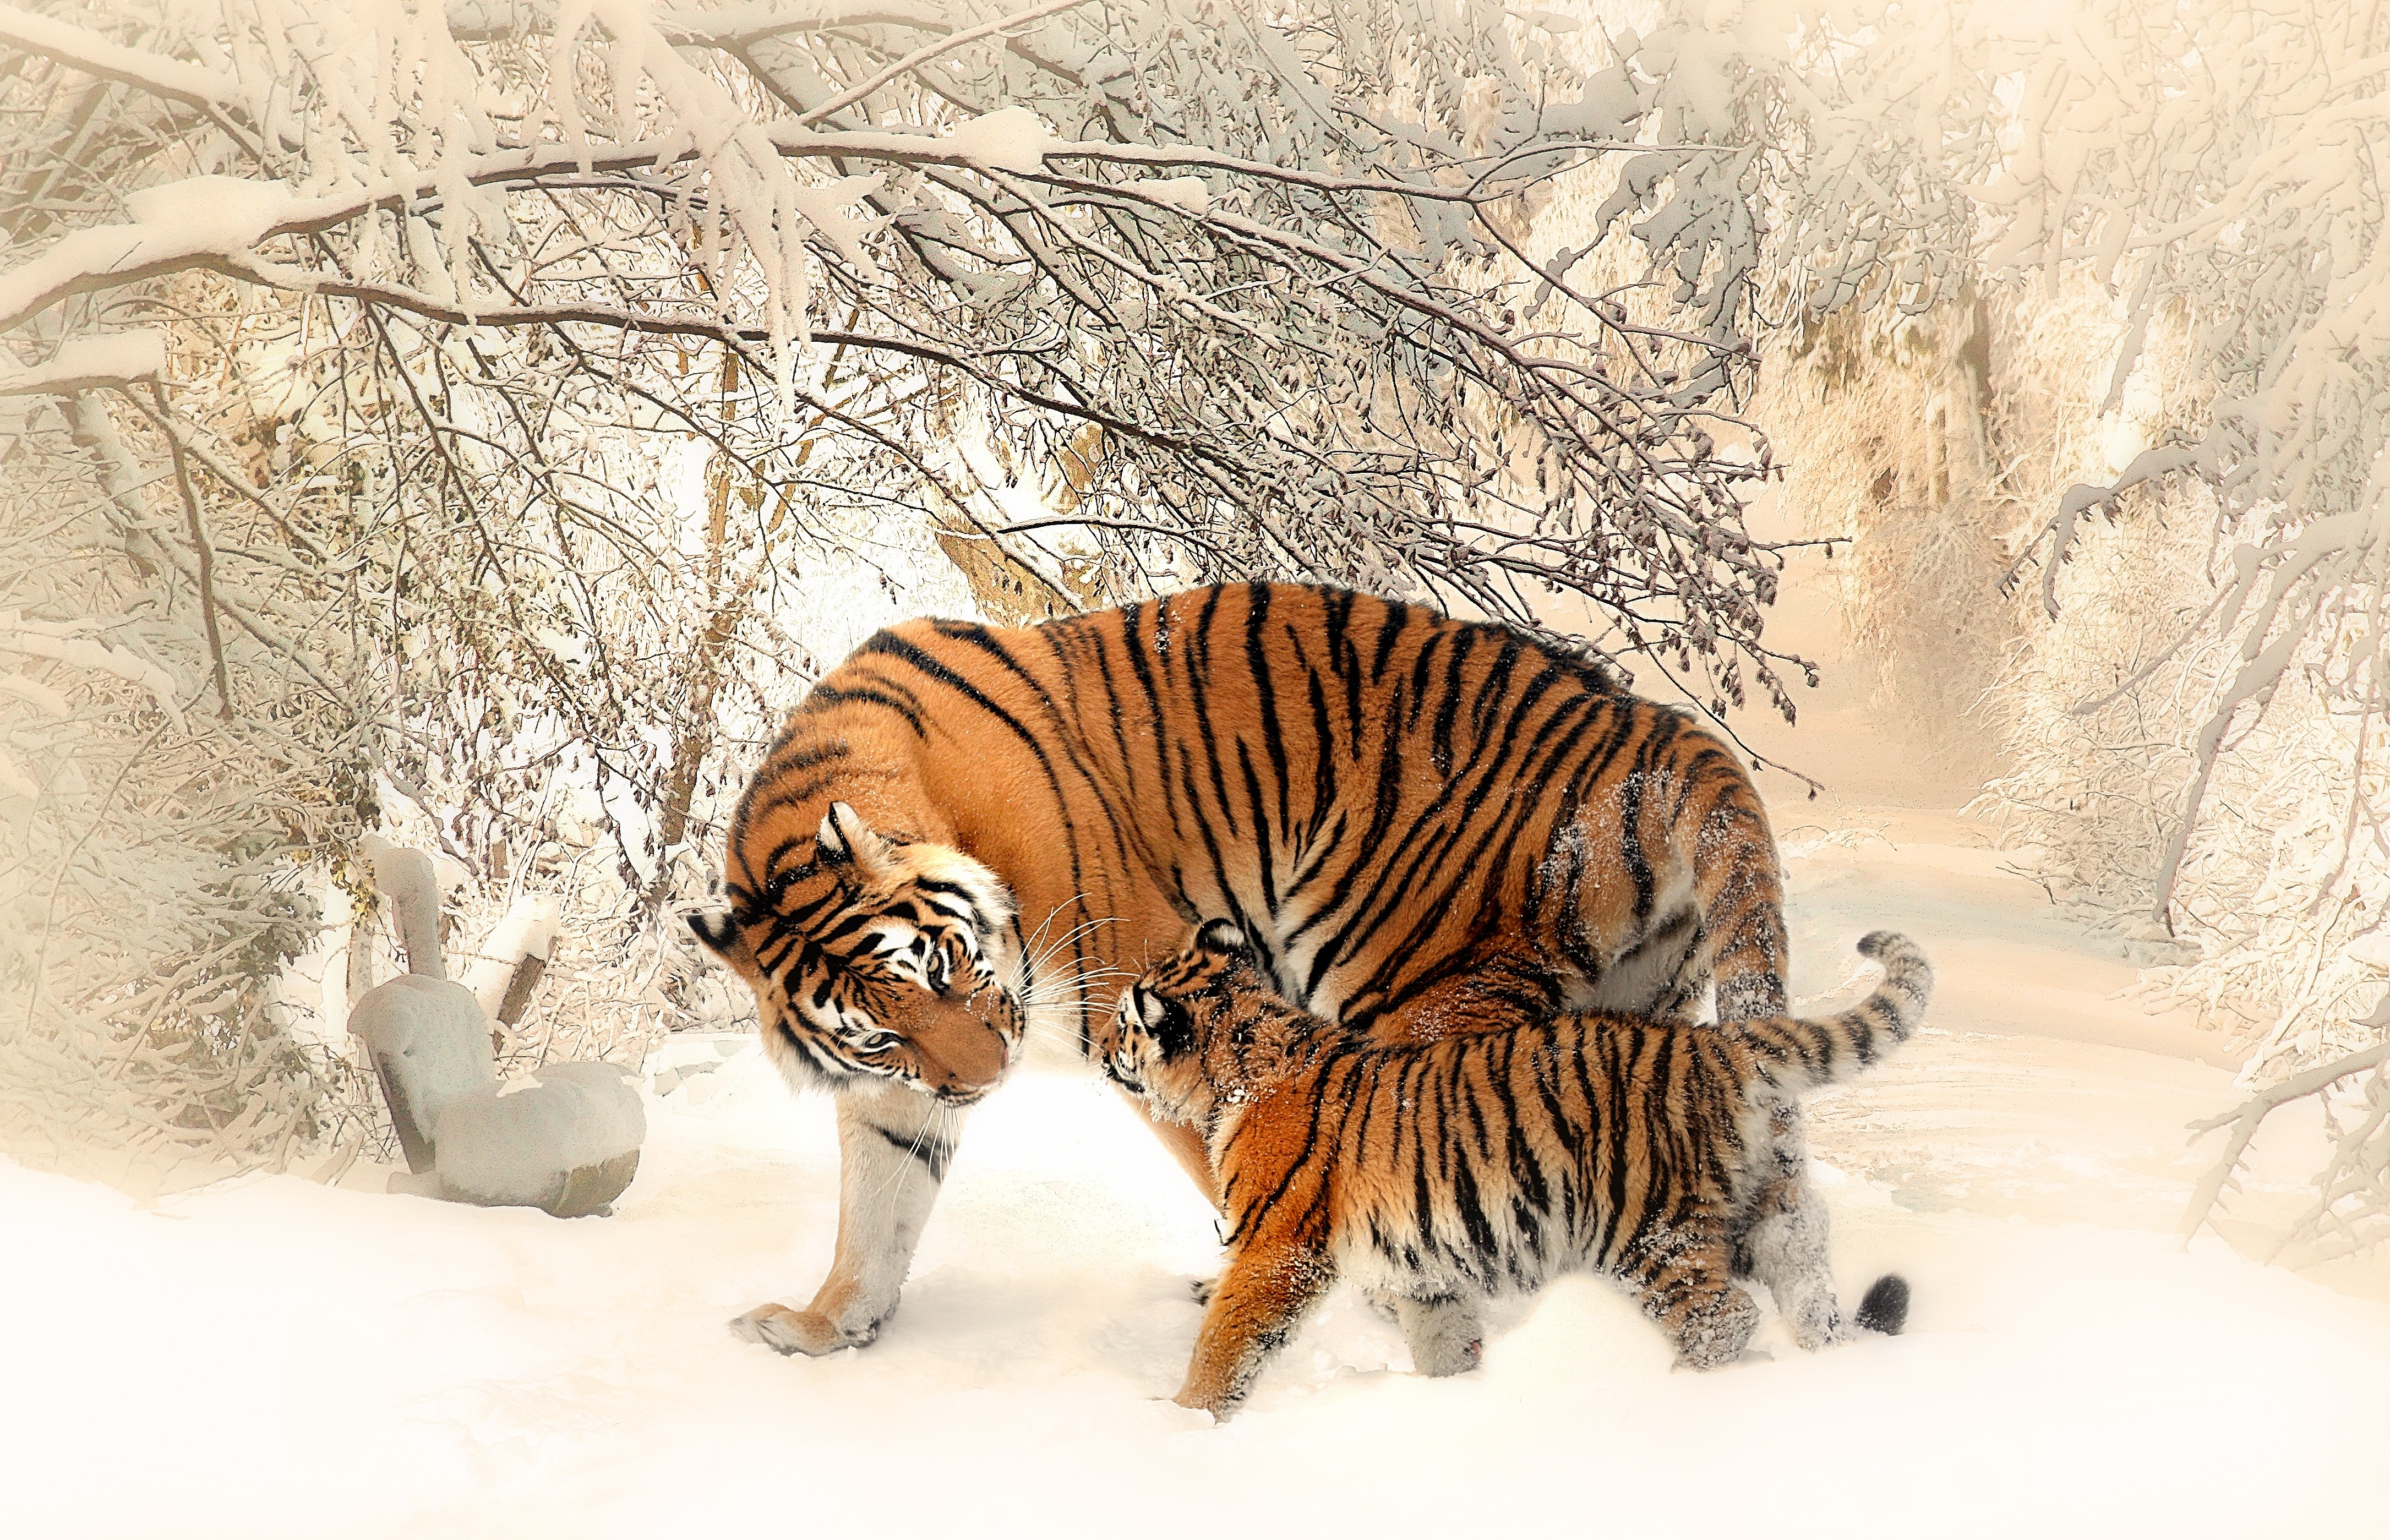 adult-and-cub-tiger-on-snowfield-near-bare-trees-39629